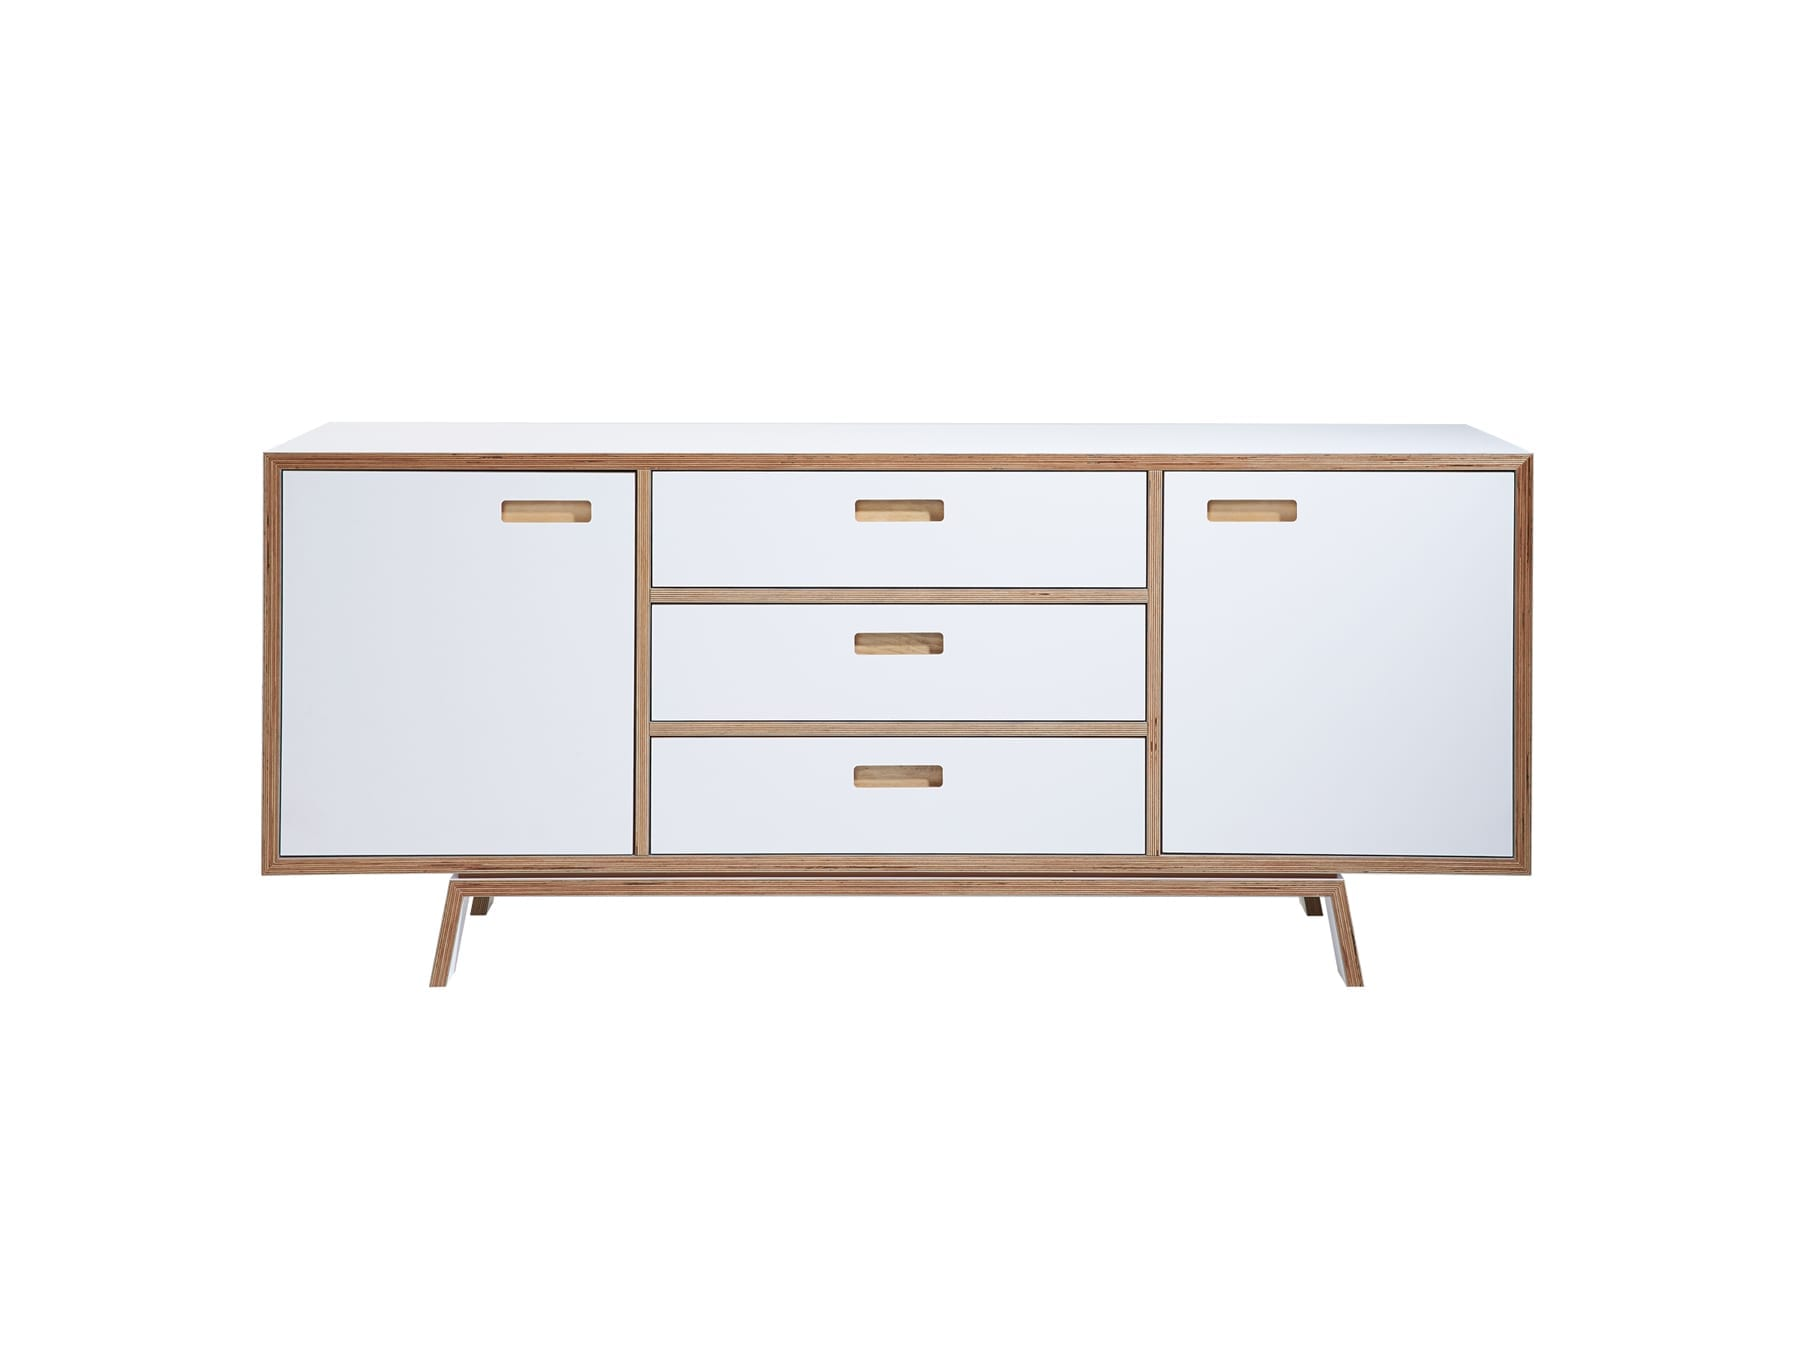 Evo Furniture Jetson Sideboard